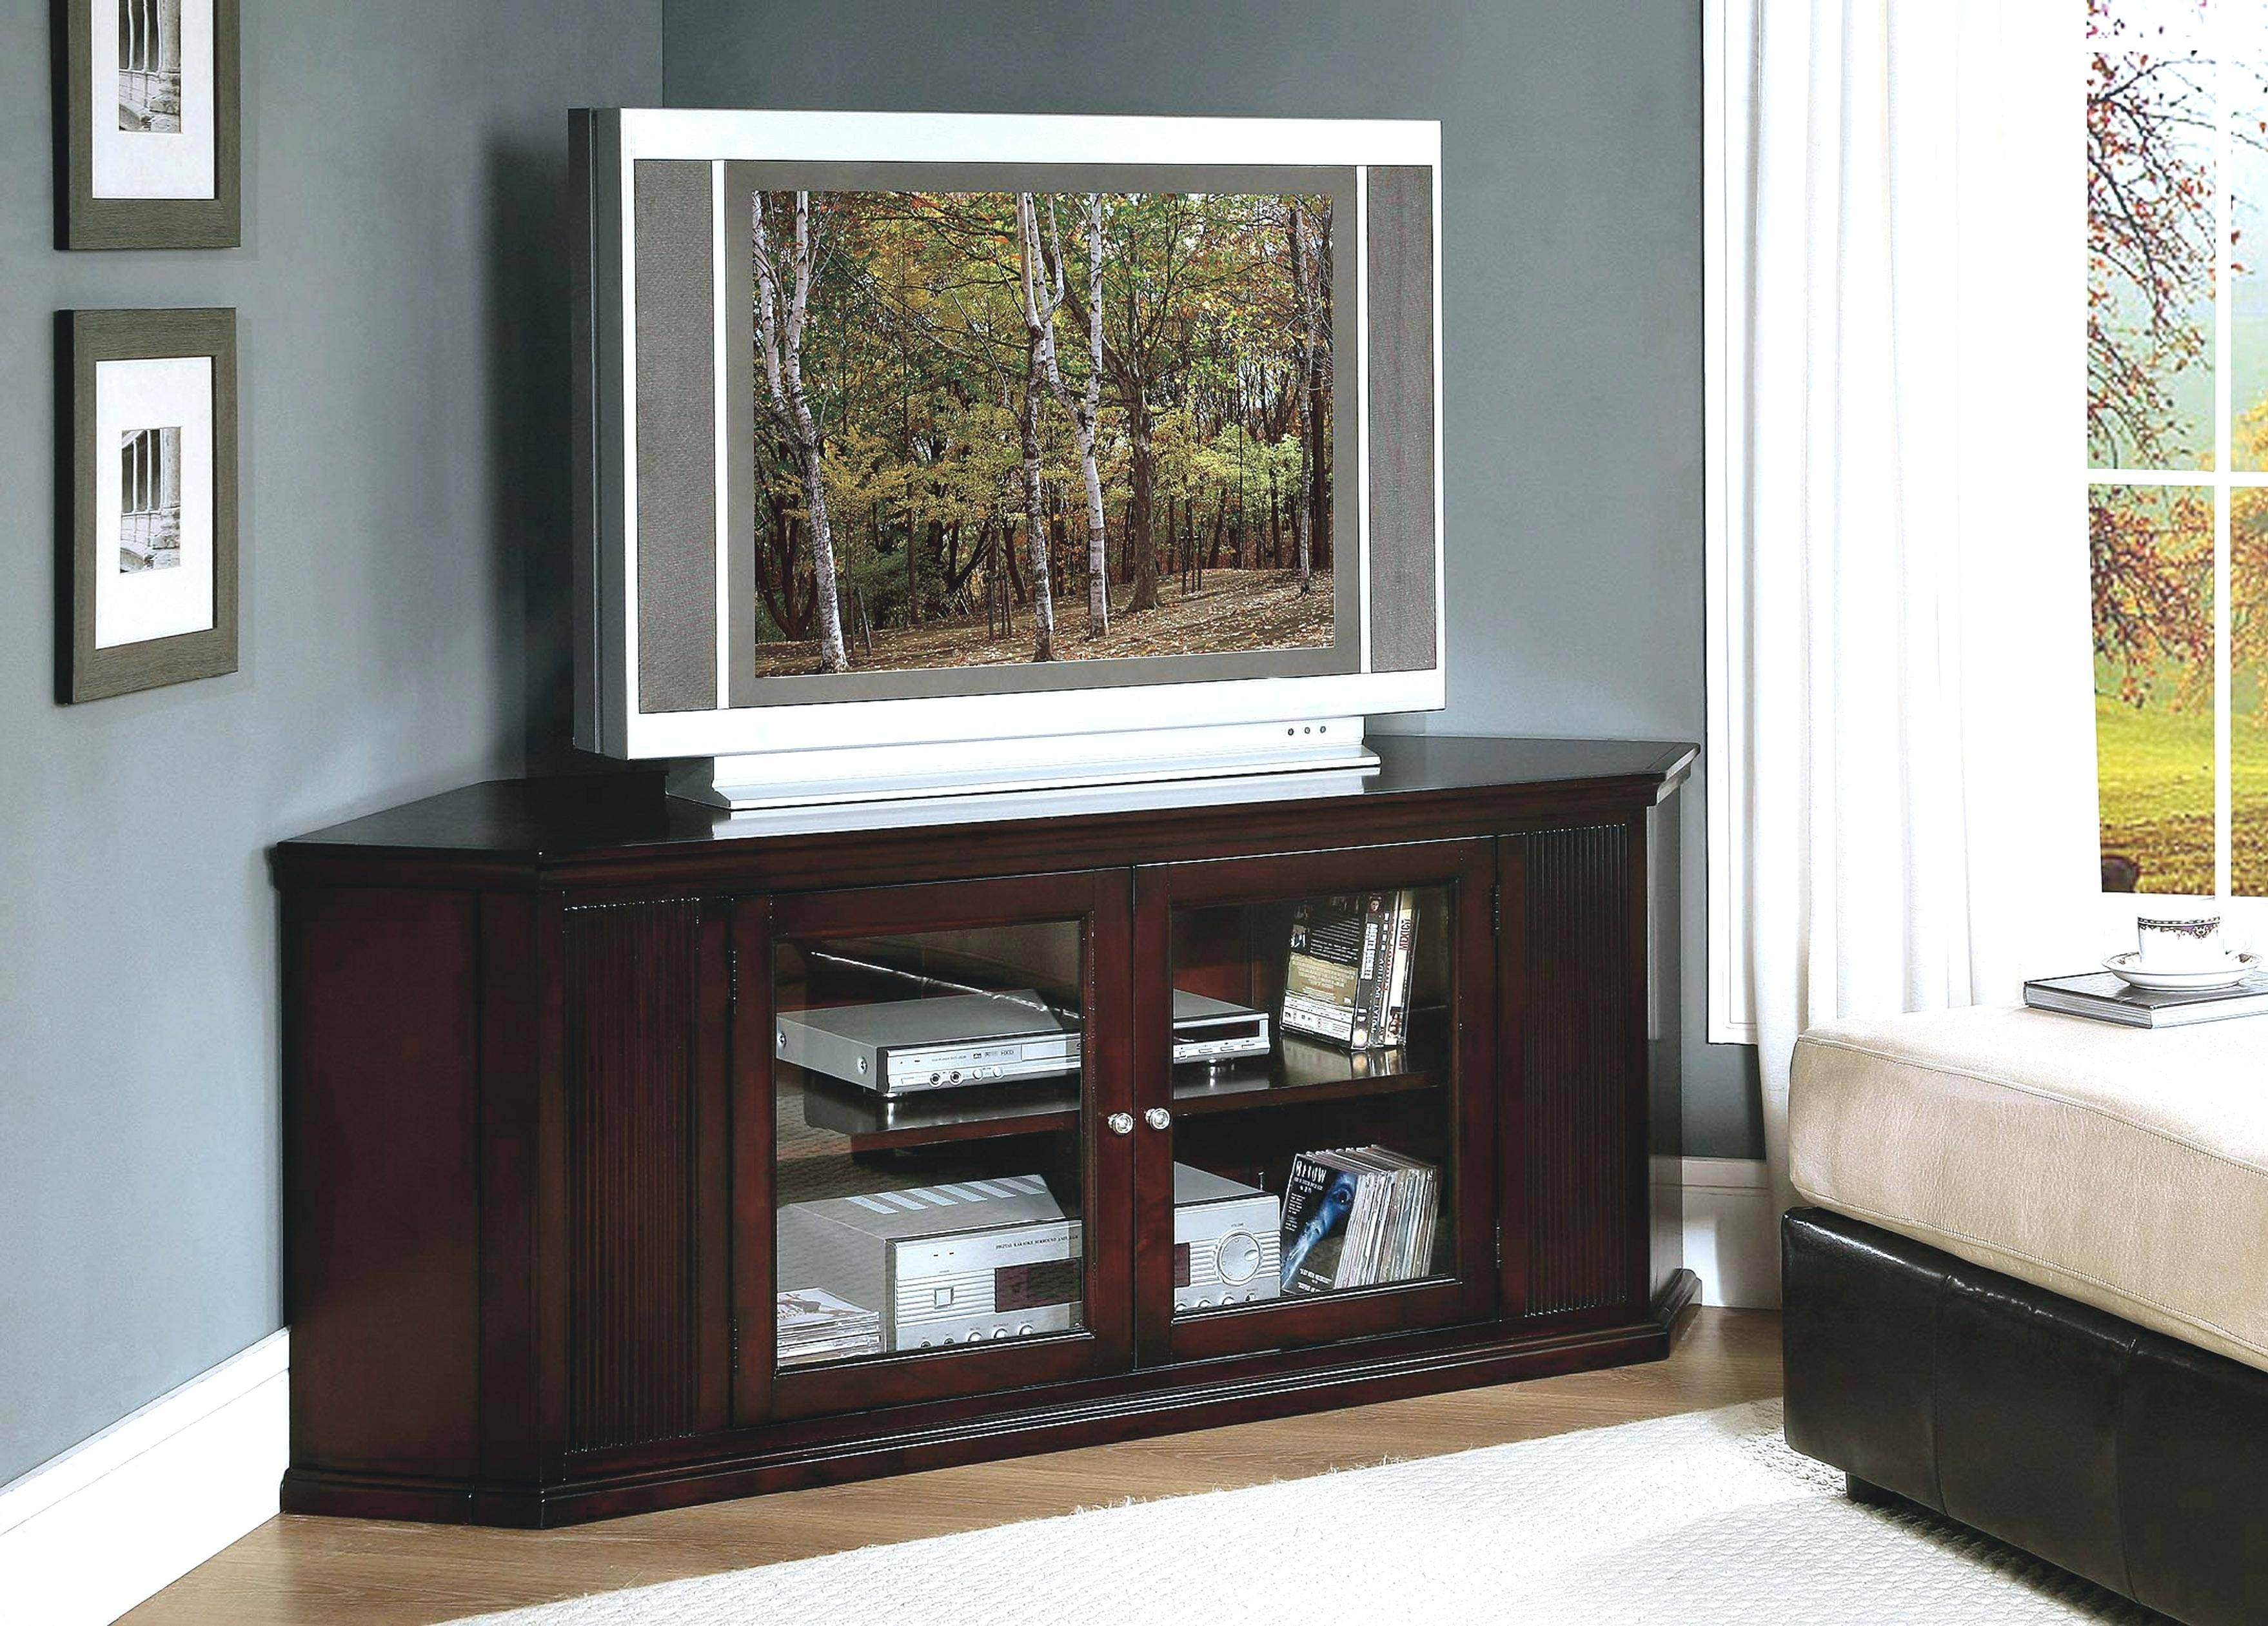 Tv Stand : Gorgeous Oak Gallery Picture Fascinating Tall Corner Tv with Cheap Corner Tv Stands For Flat Screen (Image 12 of 15)